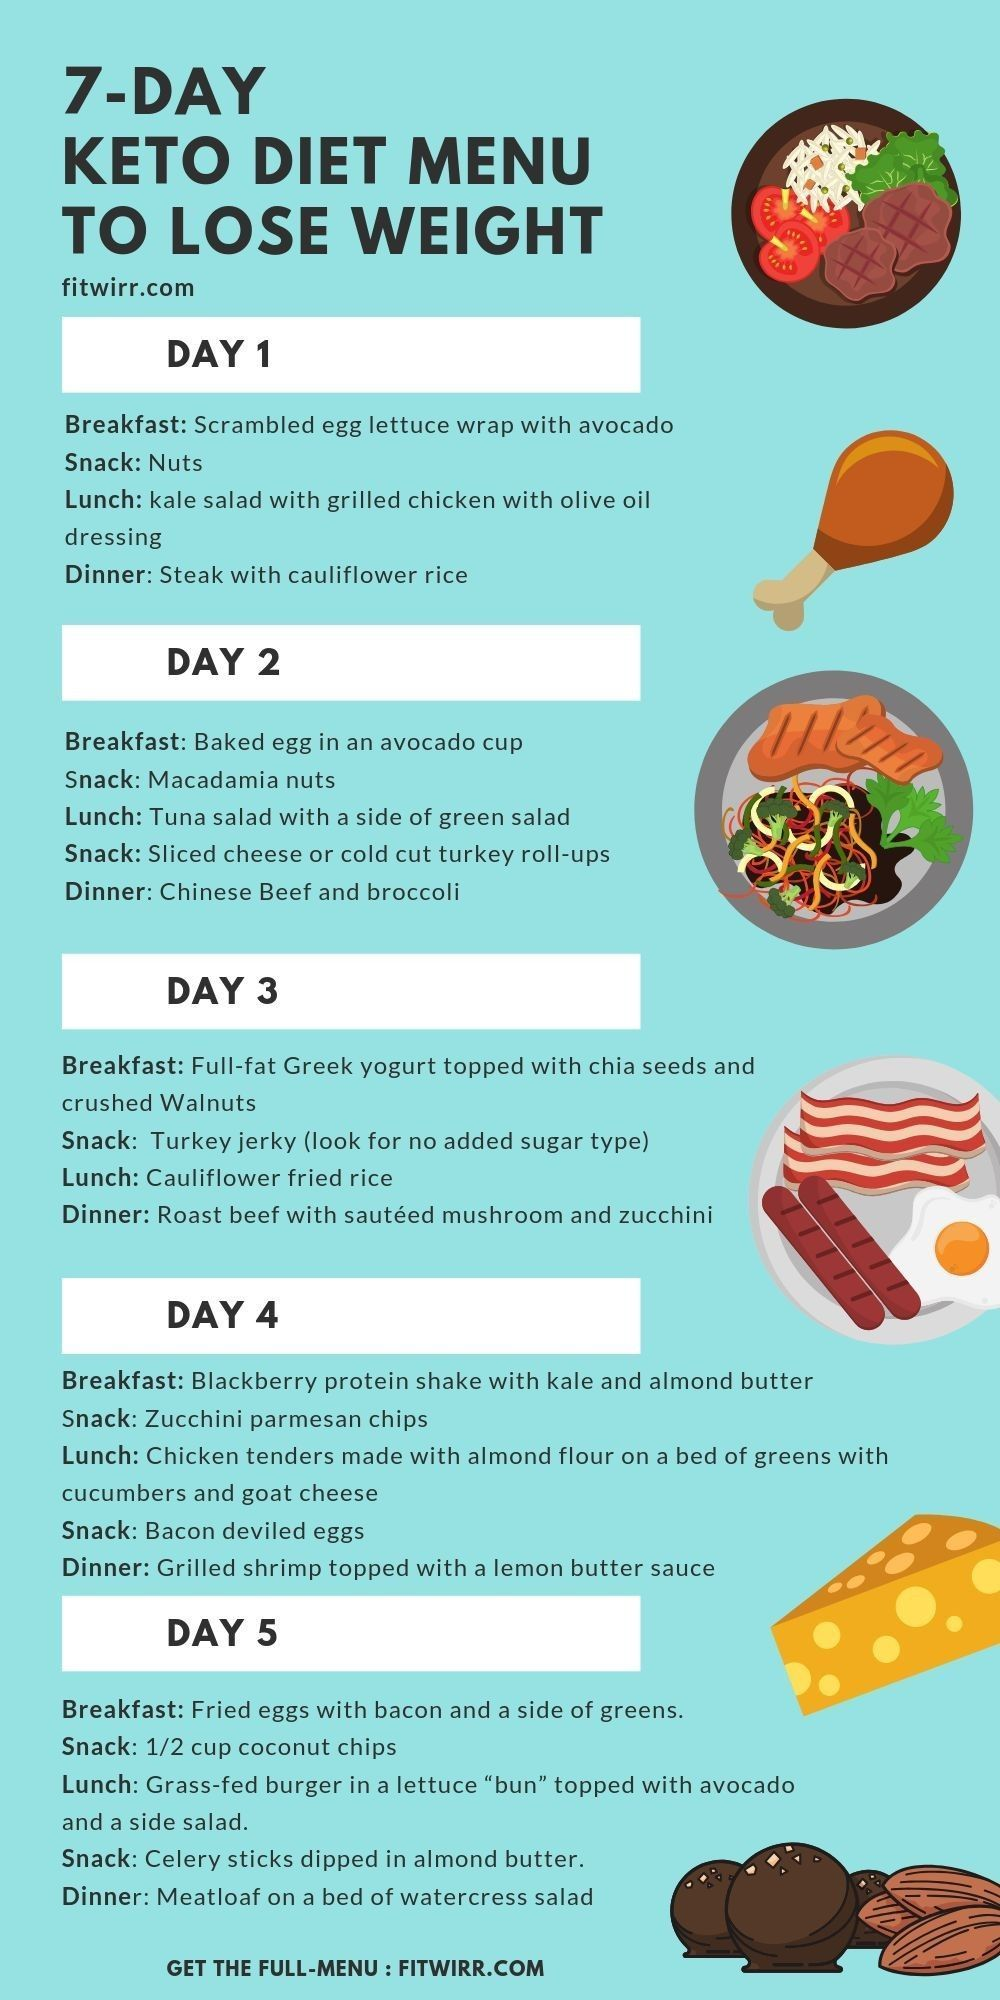 Keto Meal Plan: 7 Day Keto Diet Menu To Lose Weight